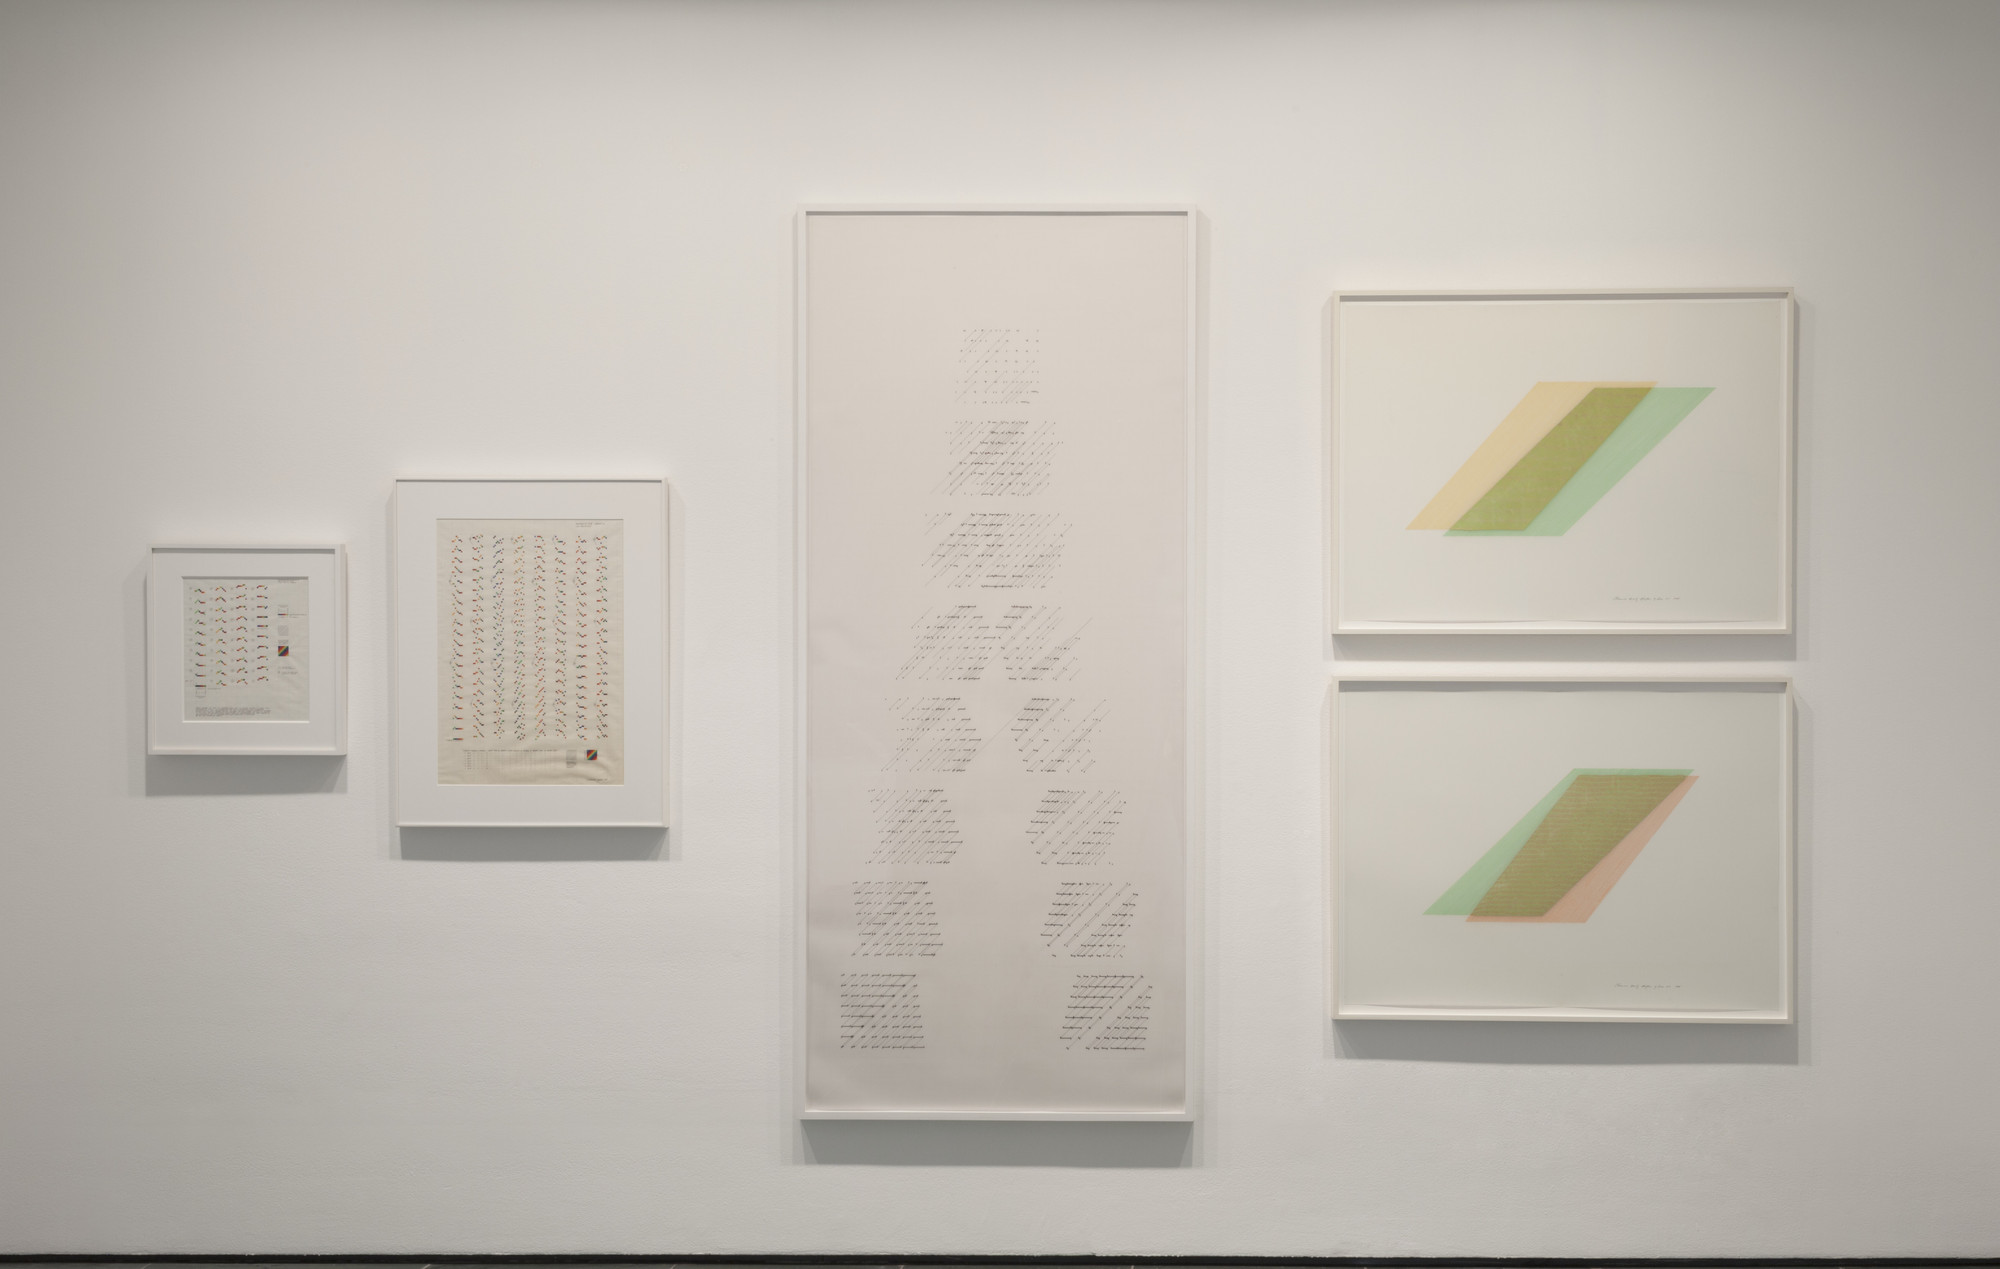 Channa Horwitz. From left: Sonakinatography I Movement #III for Multi-media. 1969. Casein and ink on graph paper. The Modern Women's Fund, 2016; Sonakinatography Movement #II Sheet B 1st Variation. 1969. Casein and pencil on graph paper. The Modern Women's Fund, 2016; Slices, Top to Bottom. 1975. Ink on Mylar. Gifts of the artist's estate, 2016. Rhythm of Lines 8–7. 1988. Casein and 23-karat gold leaf on Mylar. Gifts of the artist's estate, 2016. Rhythm of Lines 6–8. 1988. Casein and 23-karat gold leaf on Mylar. Gifts of the artist's estate, 2016. Digital image © 2016 The Museum of Modern Art